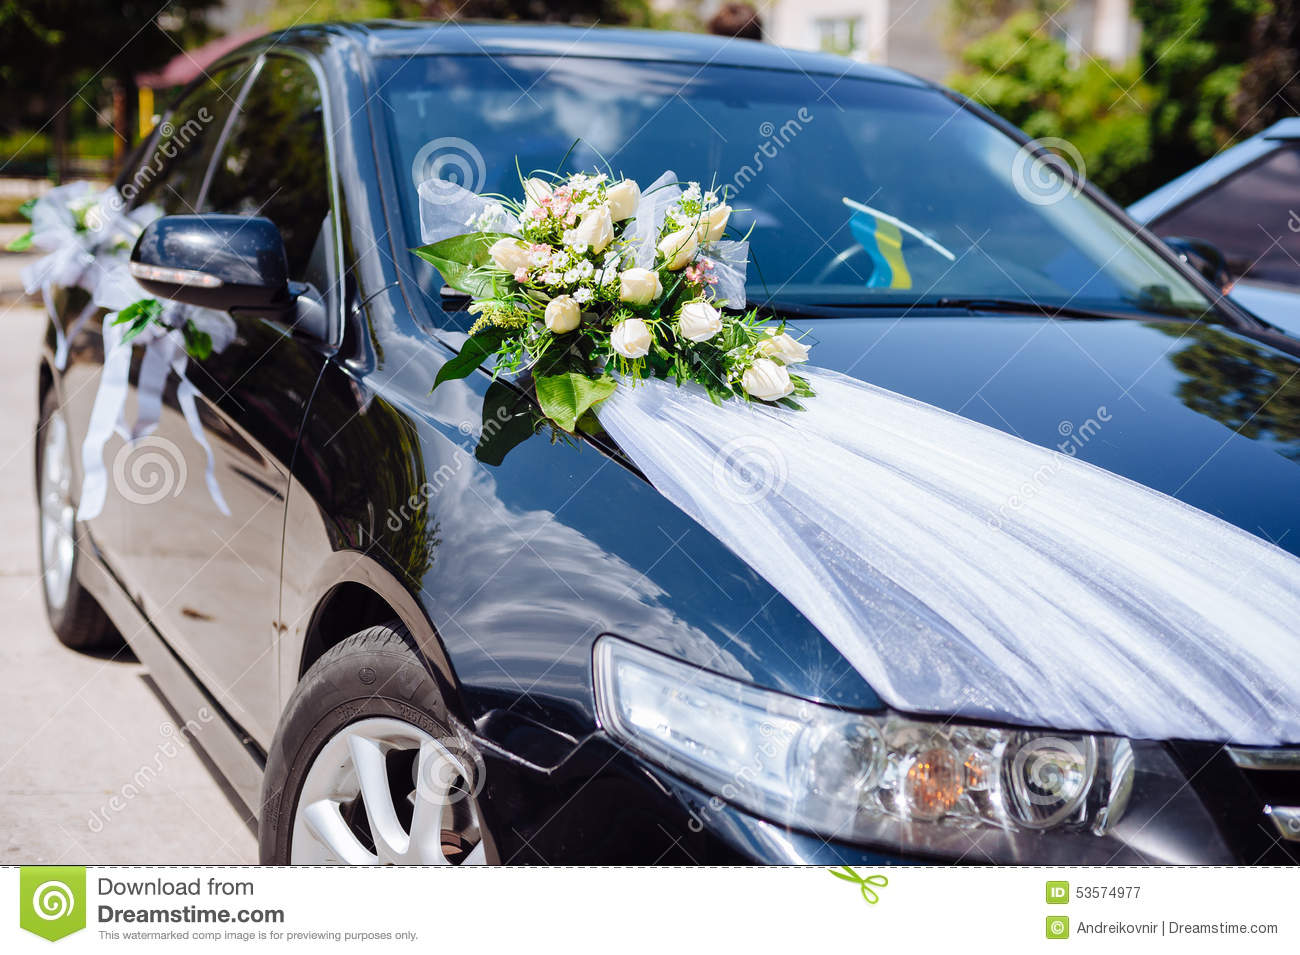 Wedding car decor flowers bouquet car decoration stock for Automobile decoration